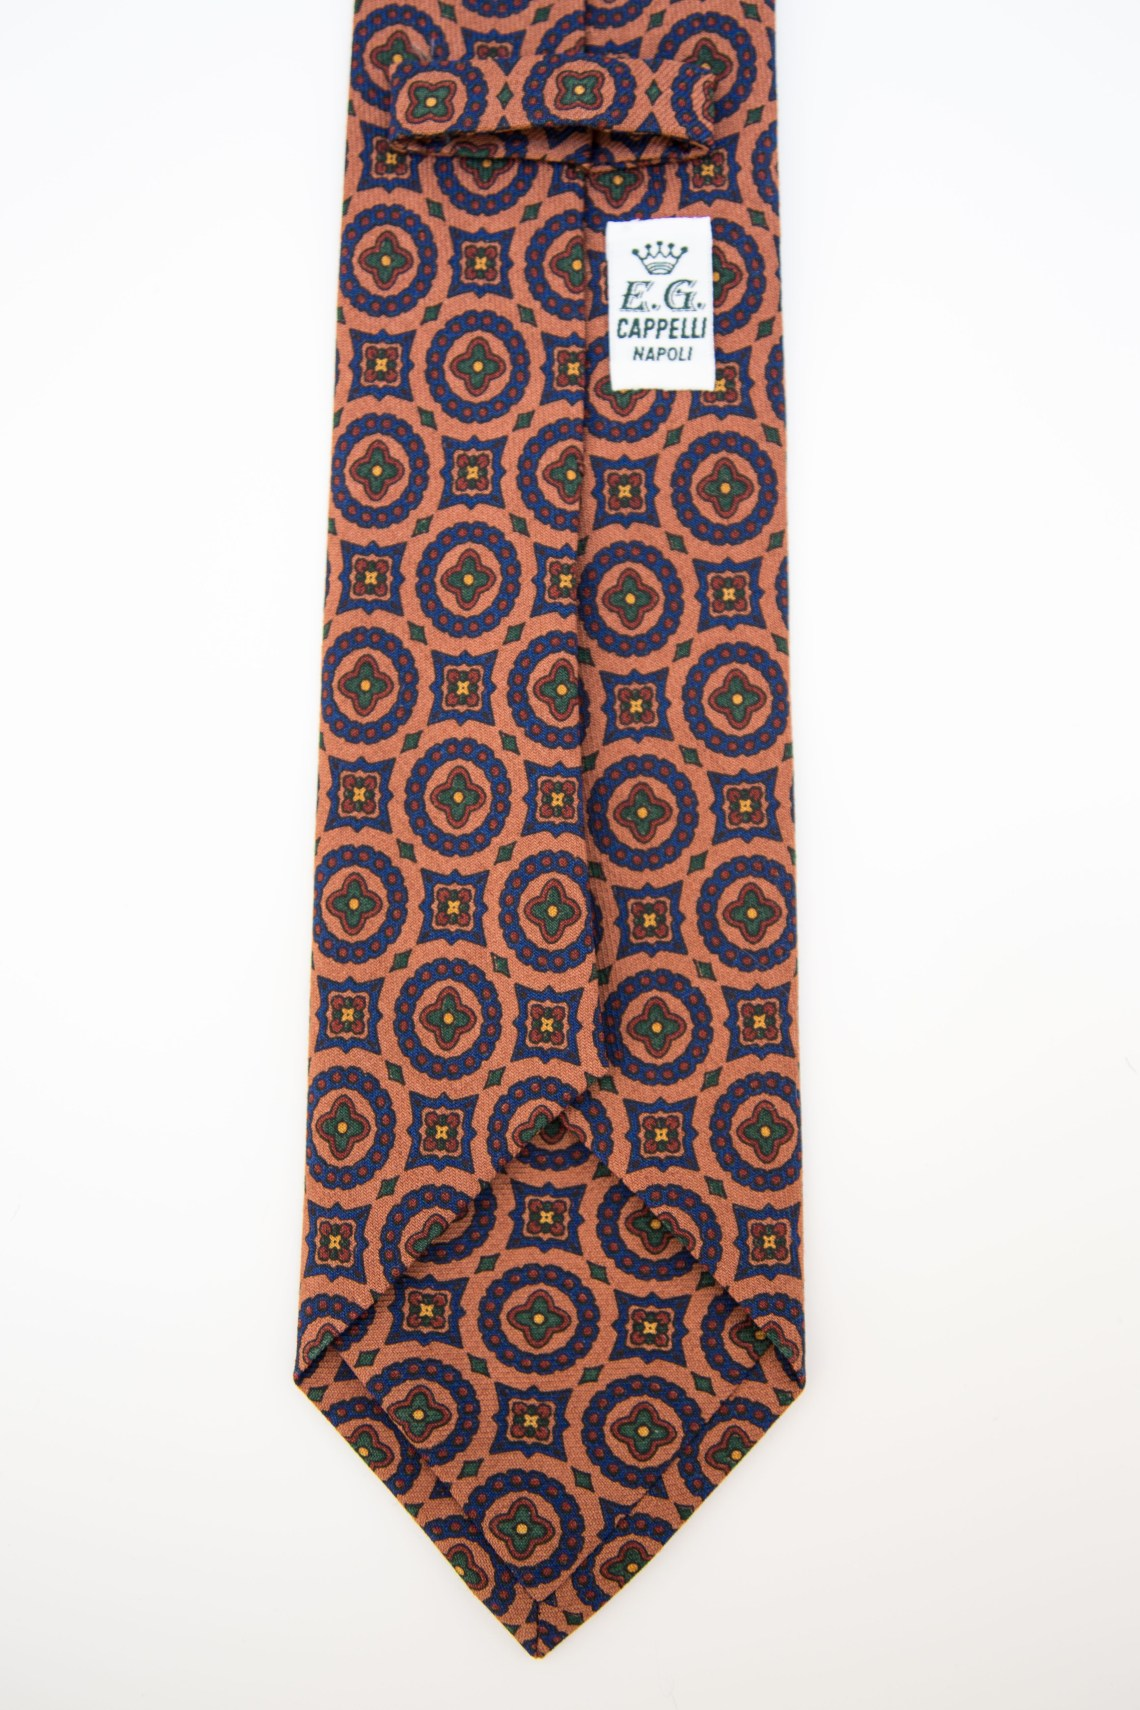 E.G. Cappelli - Multi Patterned Brick Tie 3-fold tie and Self-tipped